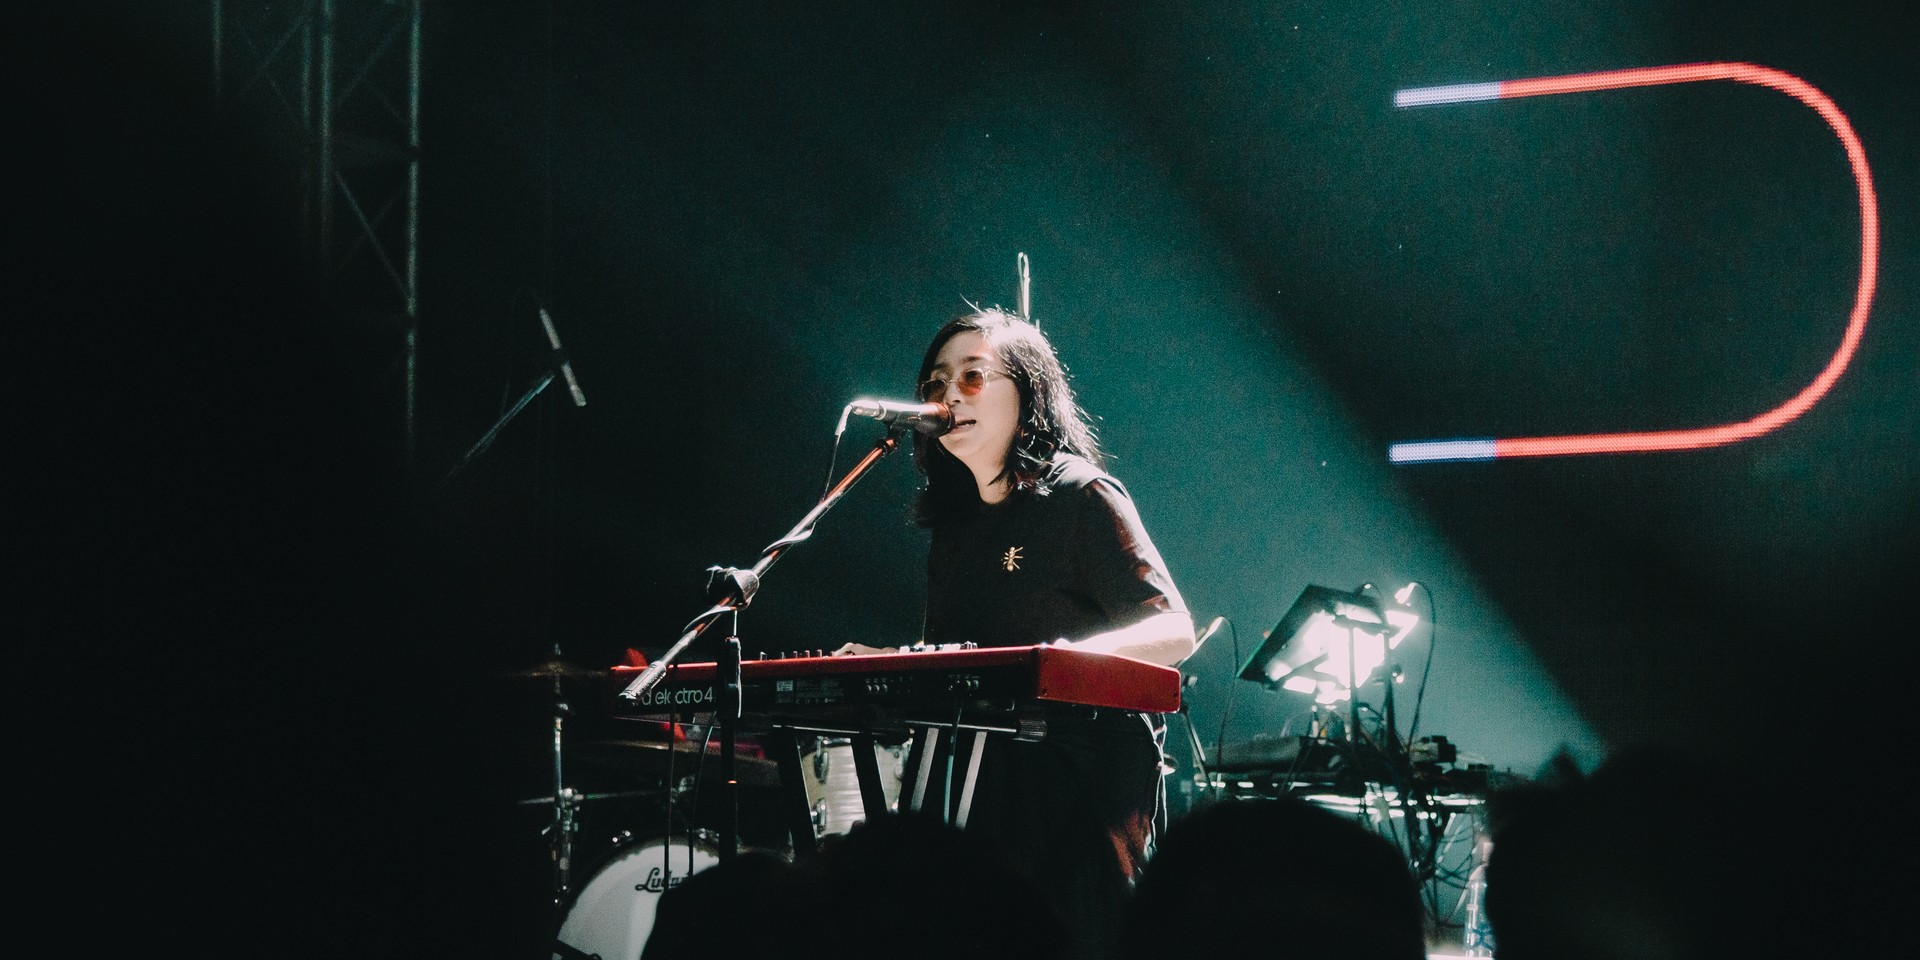 Armi Millare shares new song 'Kapit' in time for Alone/Together screening – listen